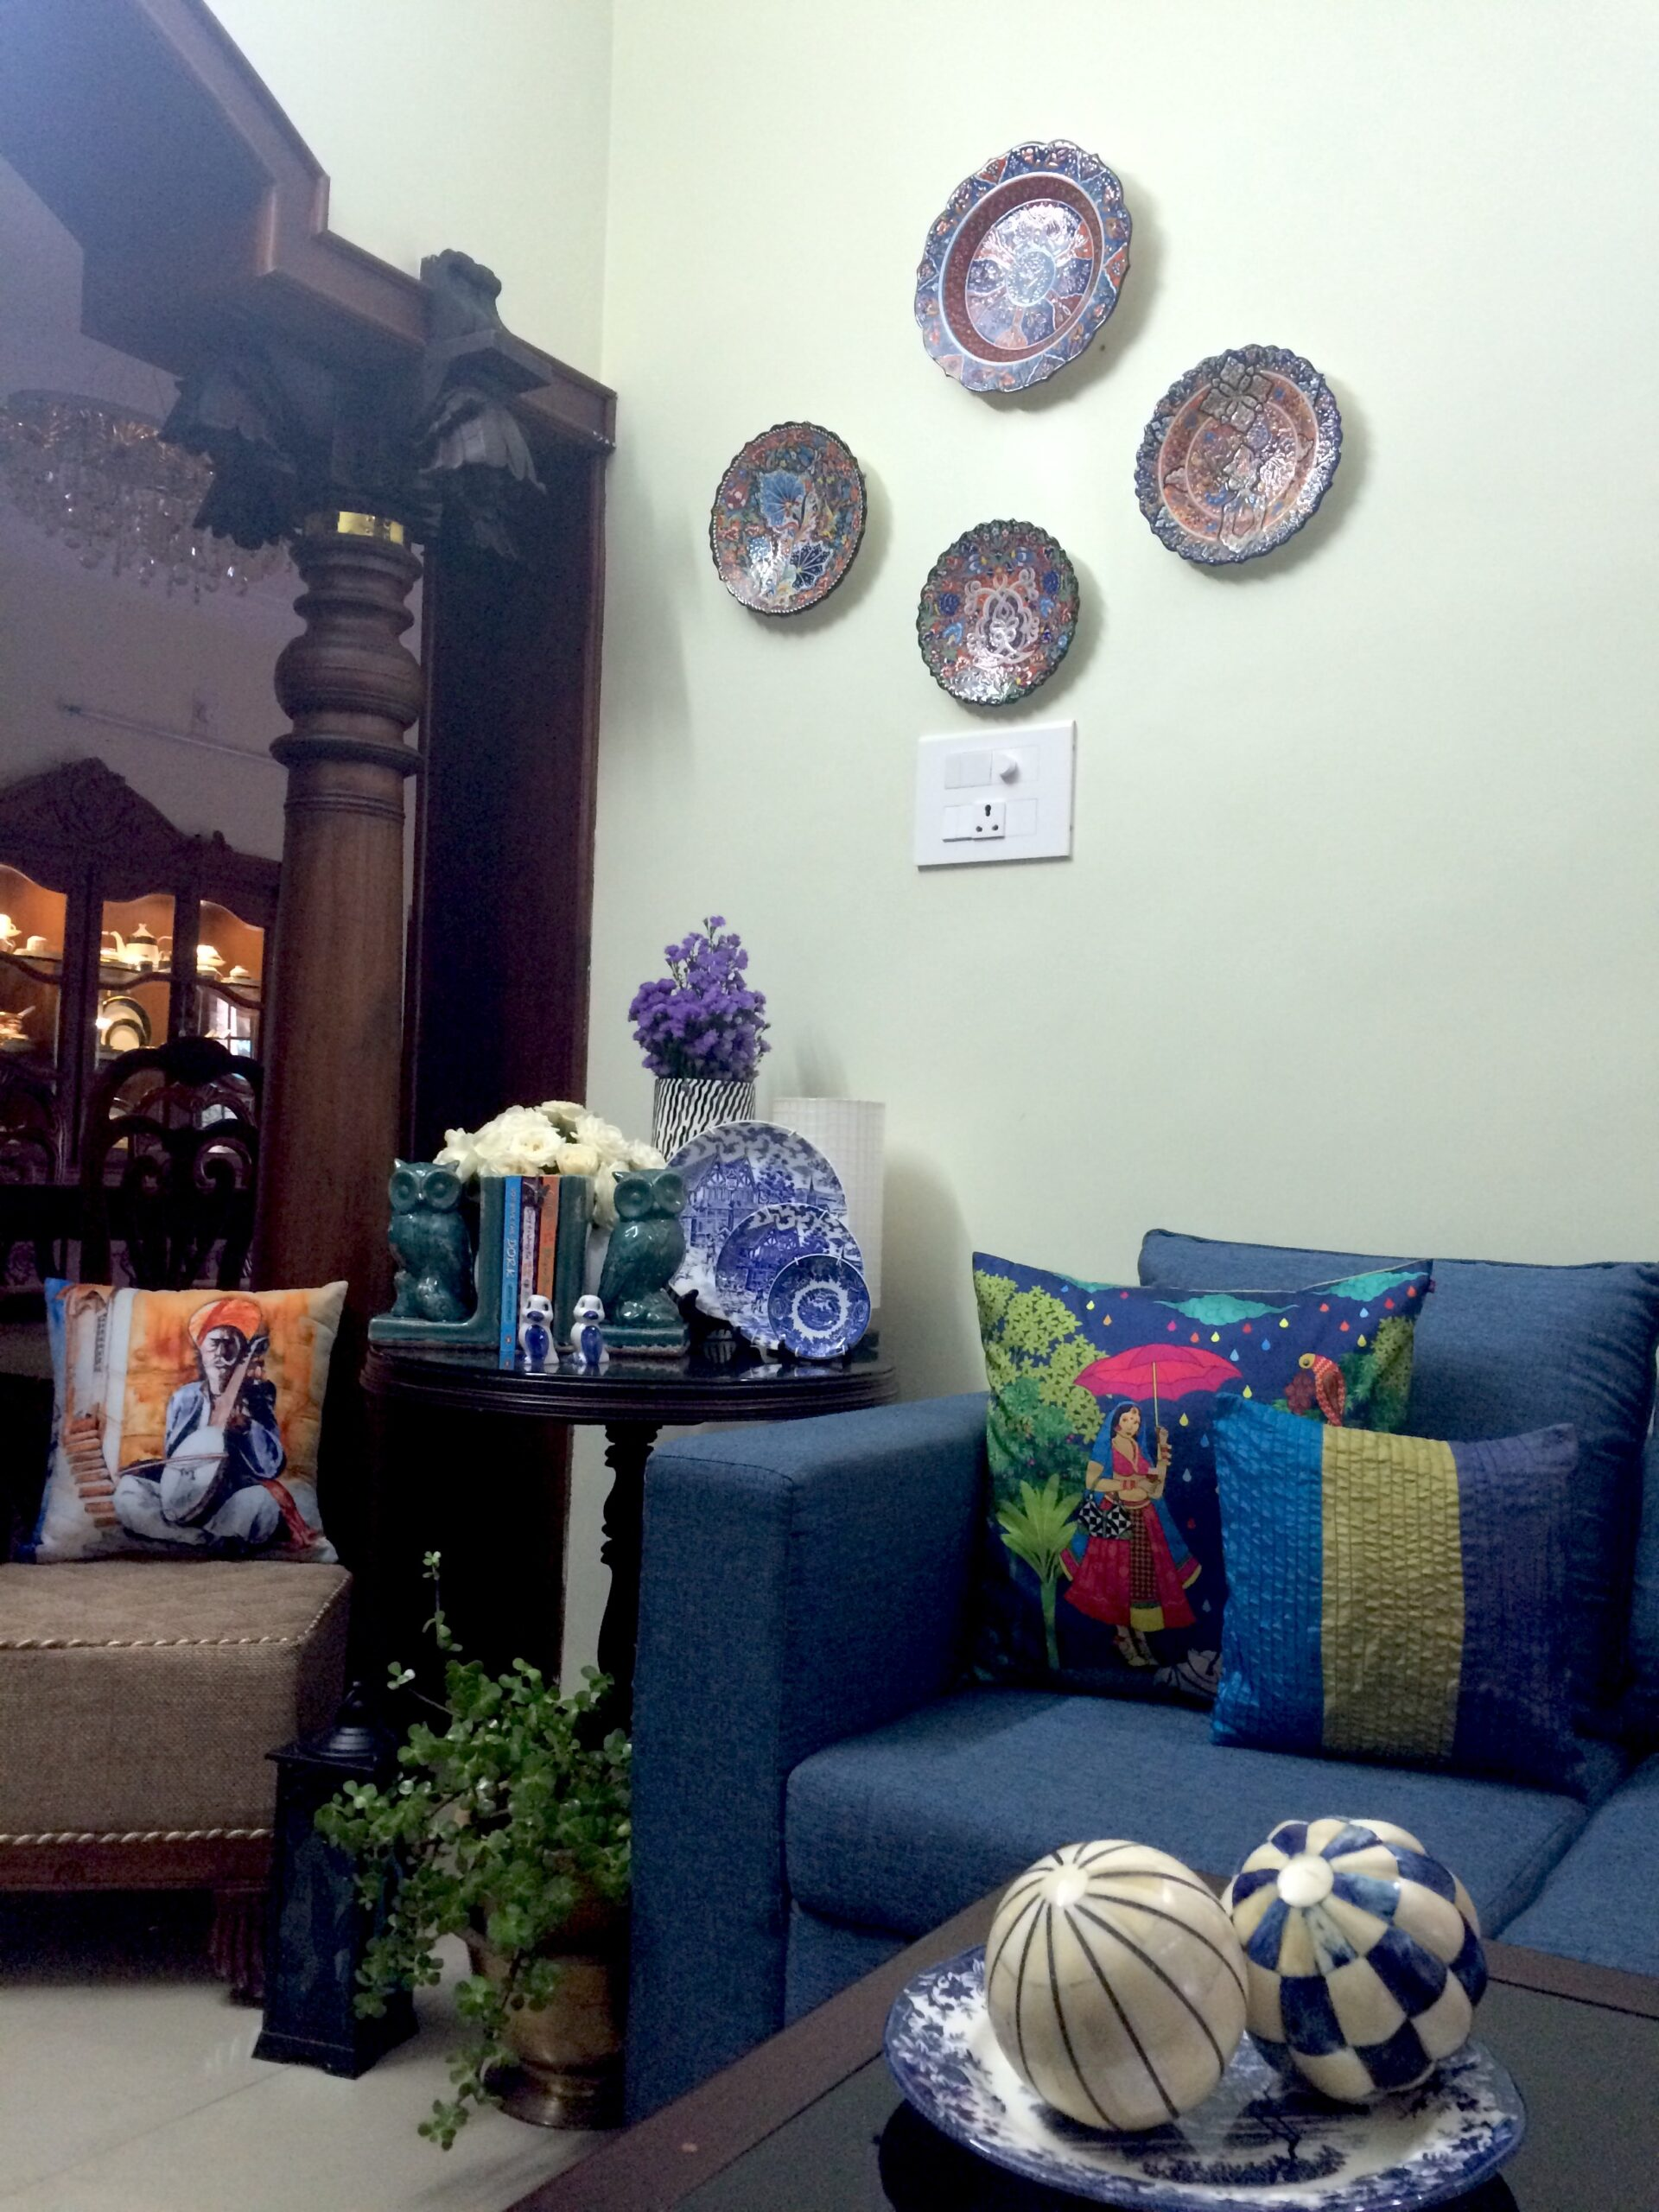 The blue room is decorated with blue wall plates, lanterns, blue sofa, green plants, cushion covers and antique wooden pillars | Joseph home tour